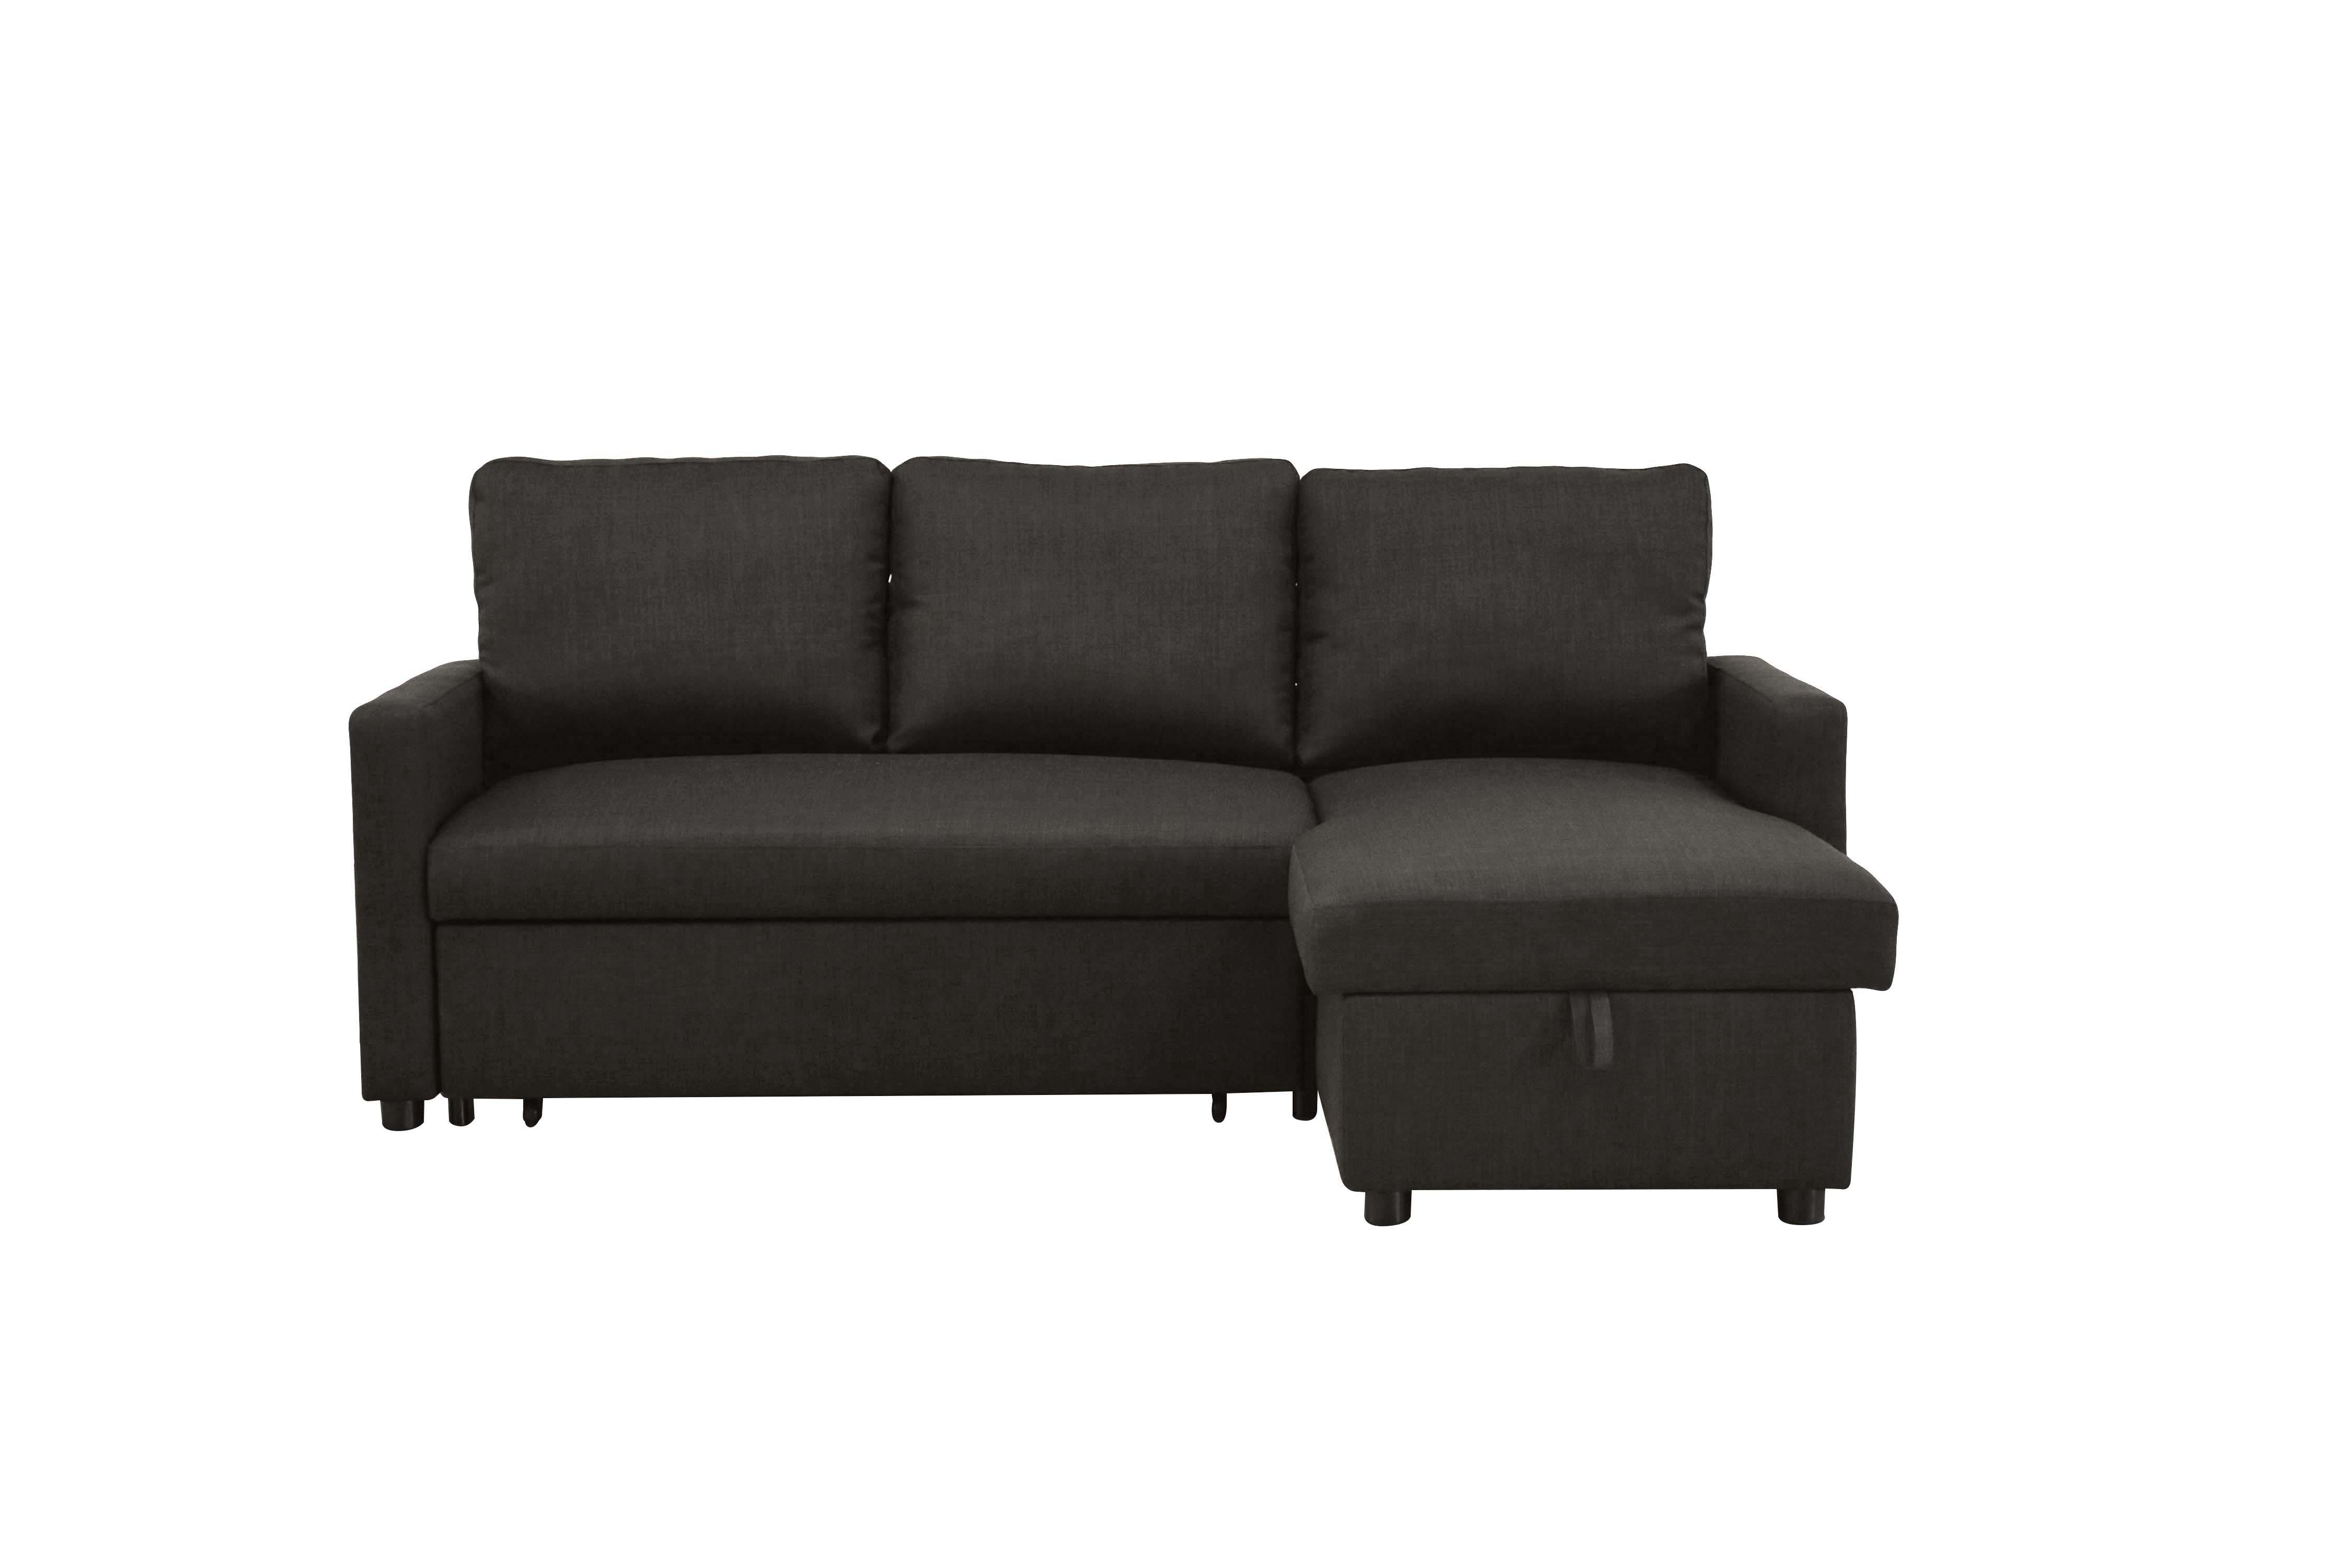 Acme Furniture Hiltons Sleeper and Storage Sectional Sofa | The ...